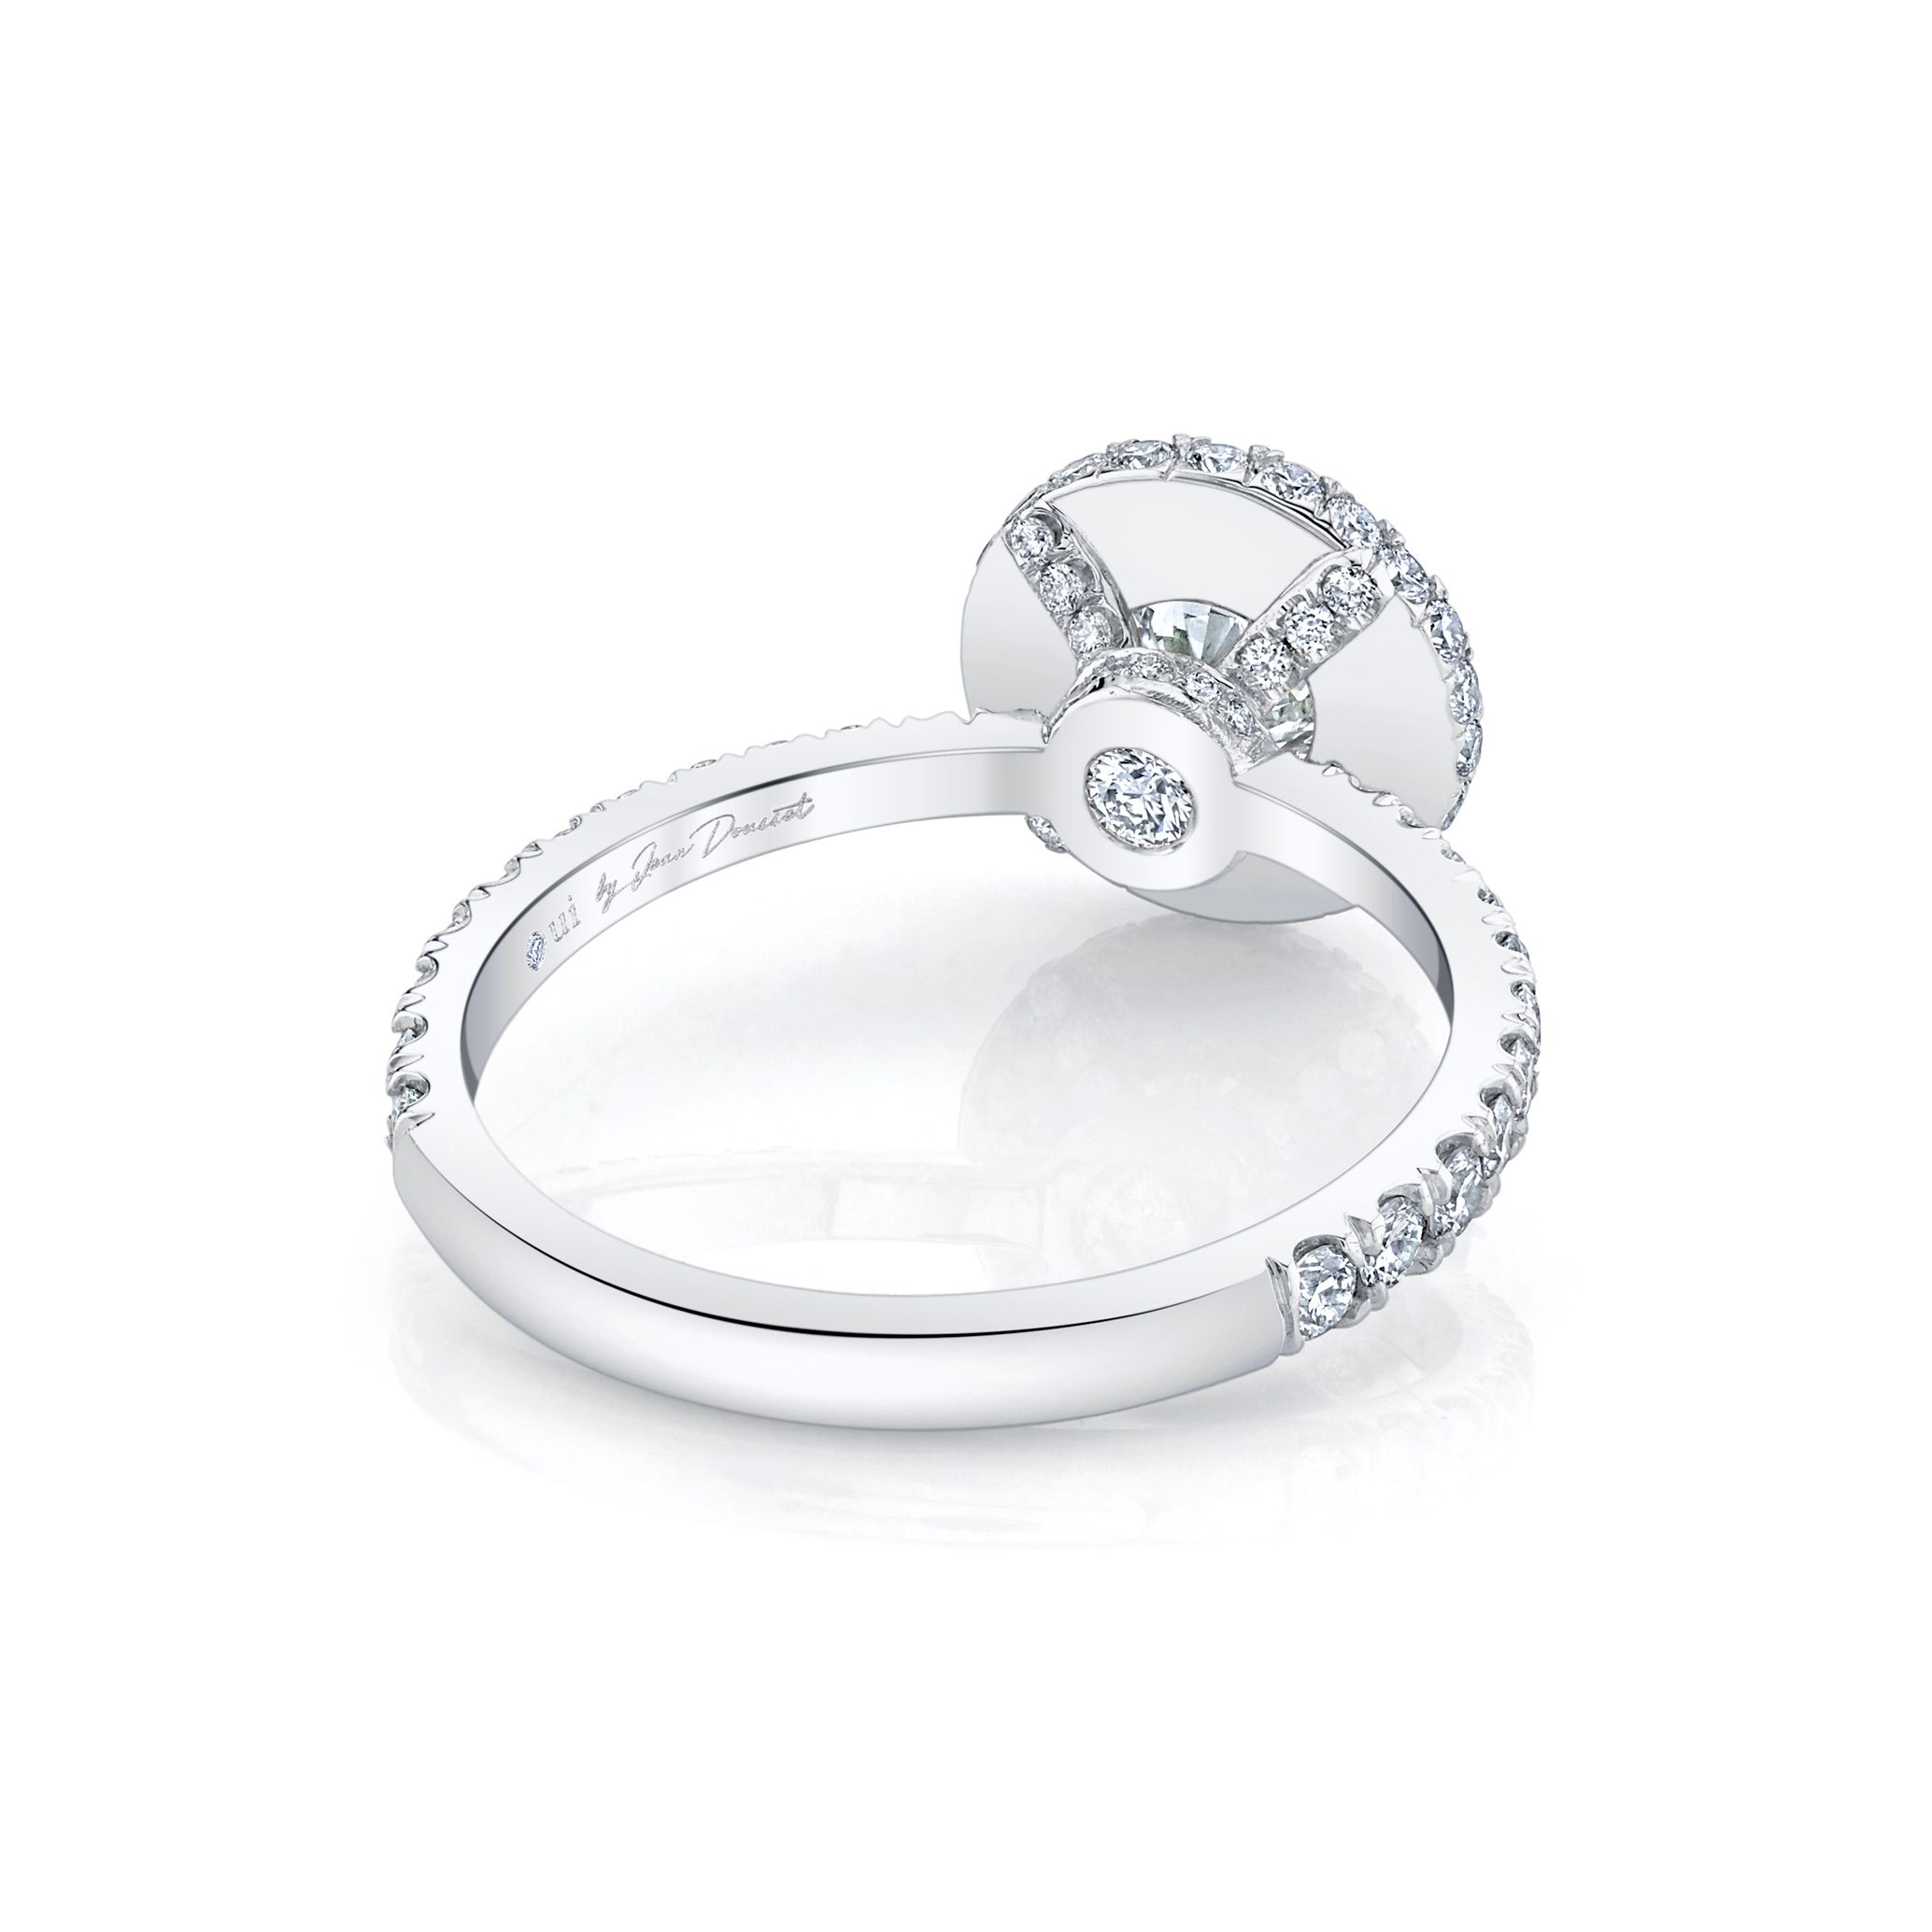 Eloise Round Brilliant Seamless Halo® Engagement Ring with diamond pavé in 18k White Gold Back View by Oui by Jean Dousset